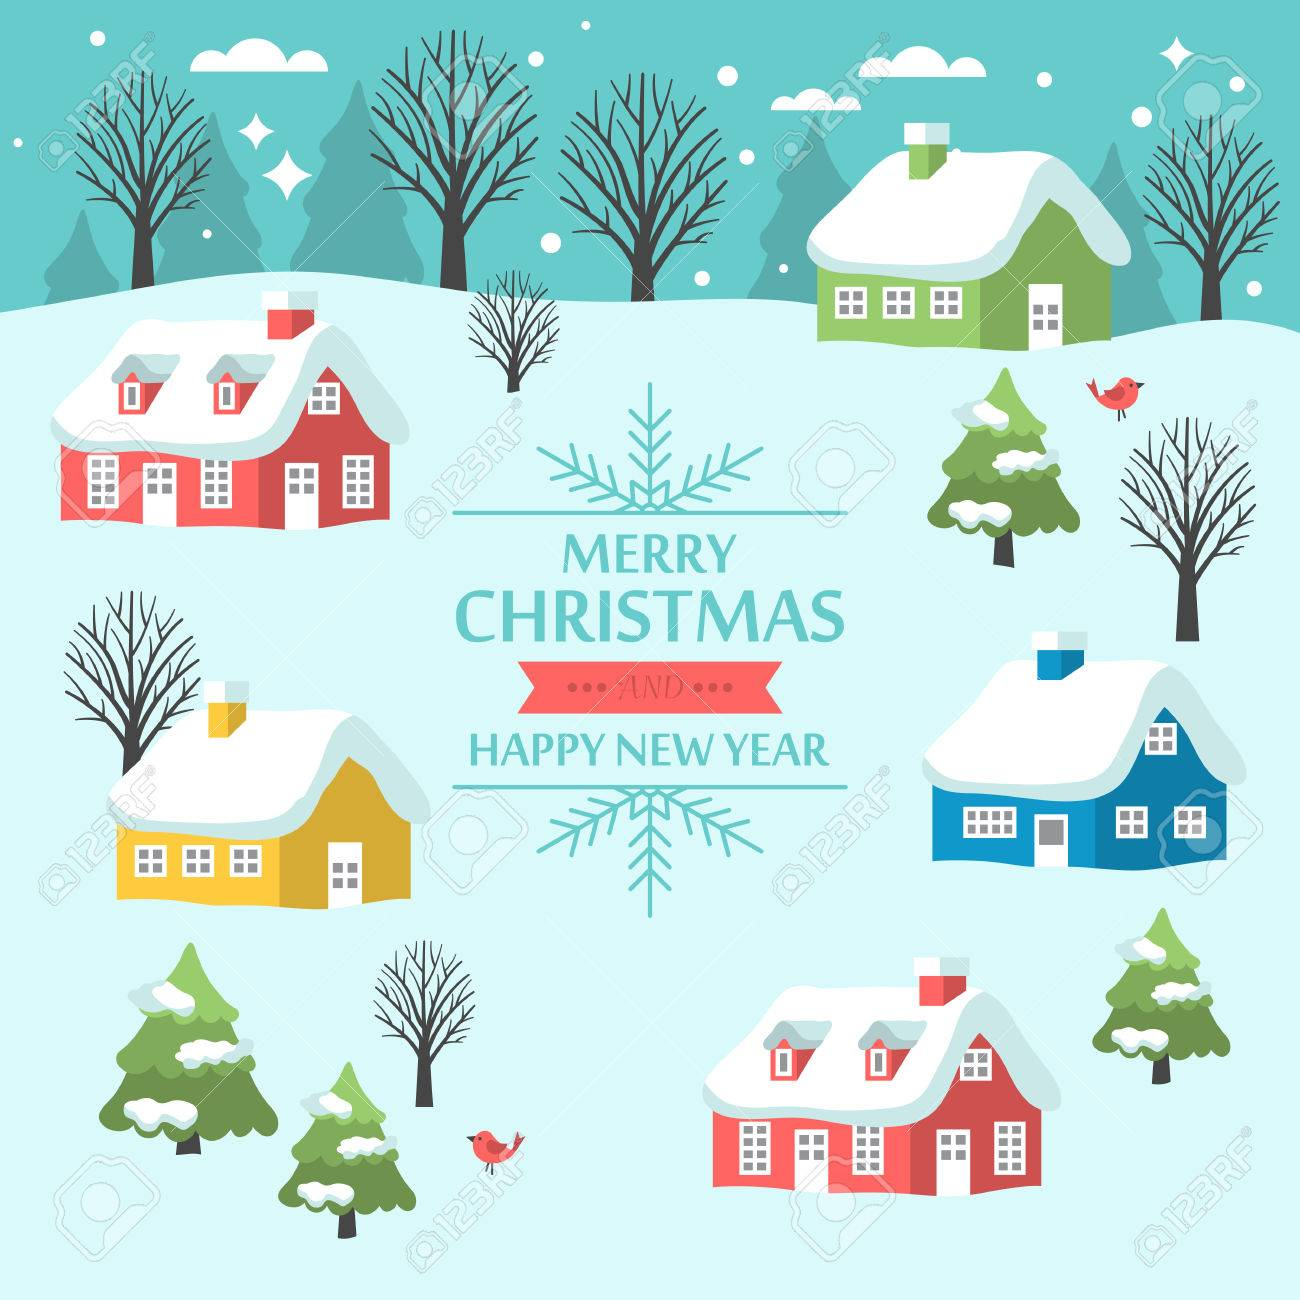 Christmas Greeting Card Design With Country Landscape And Small